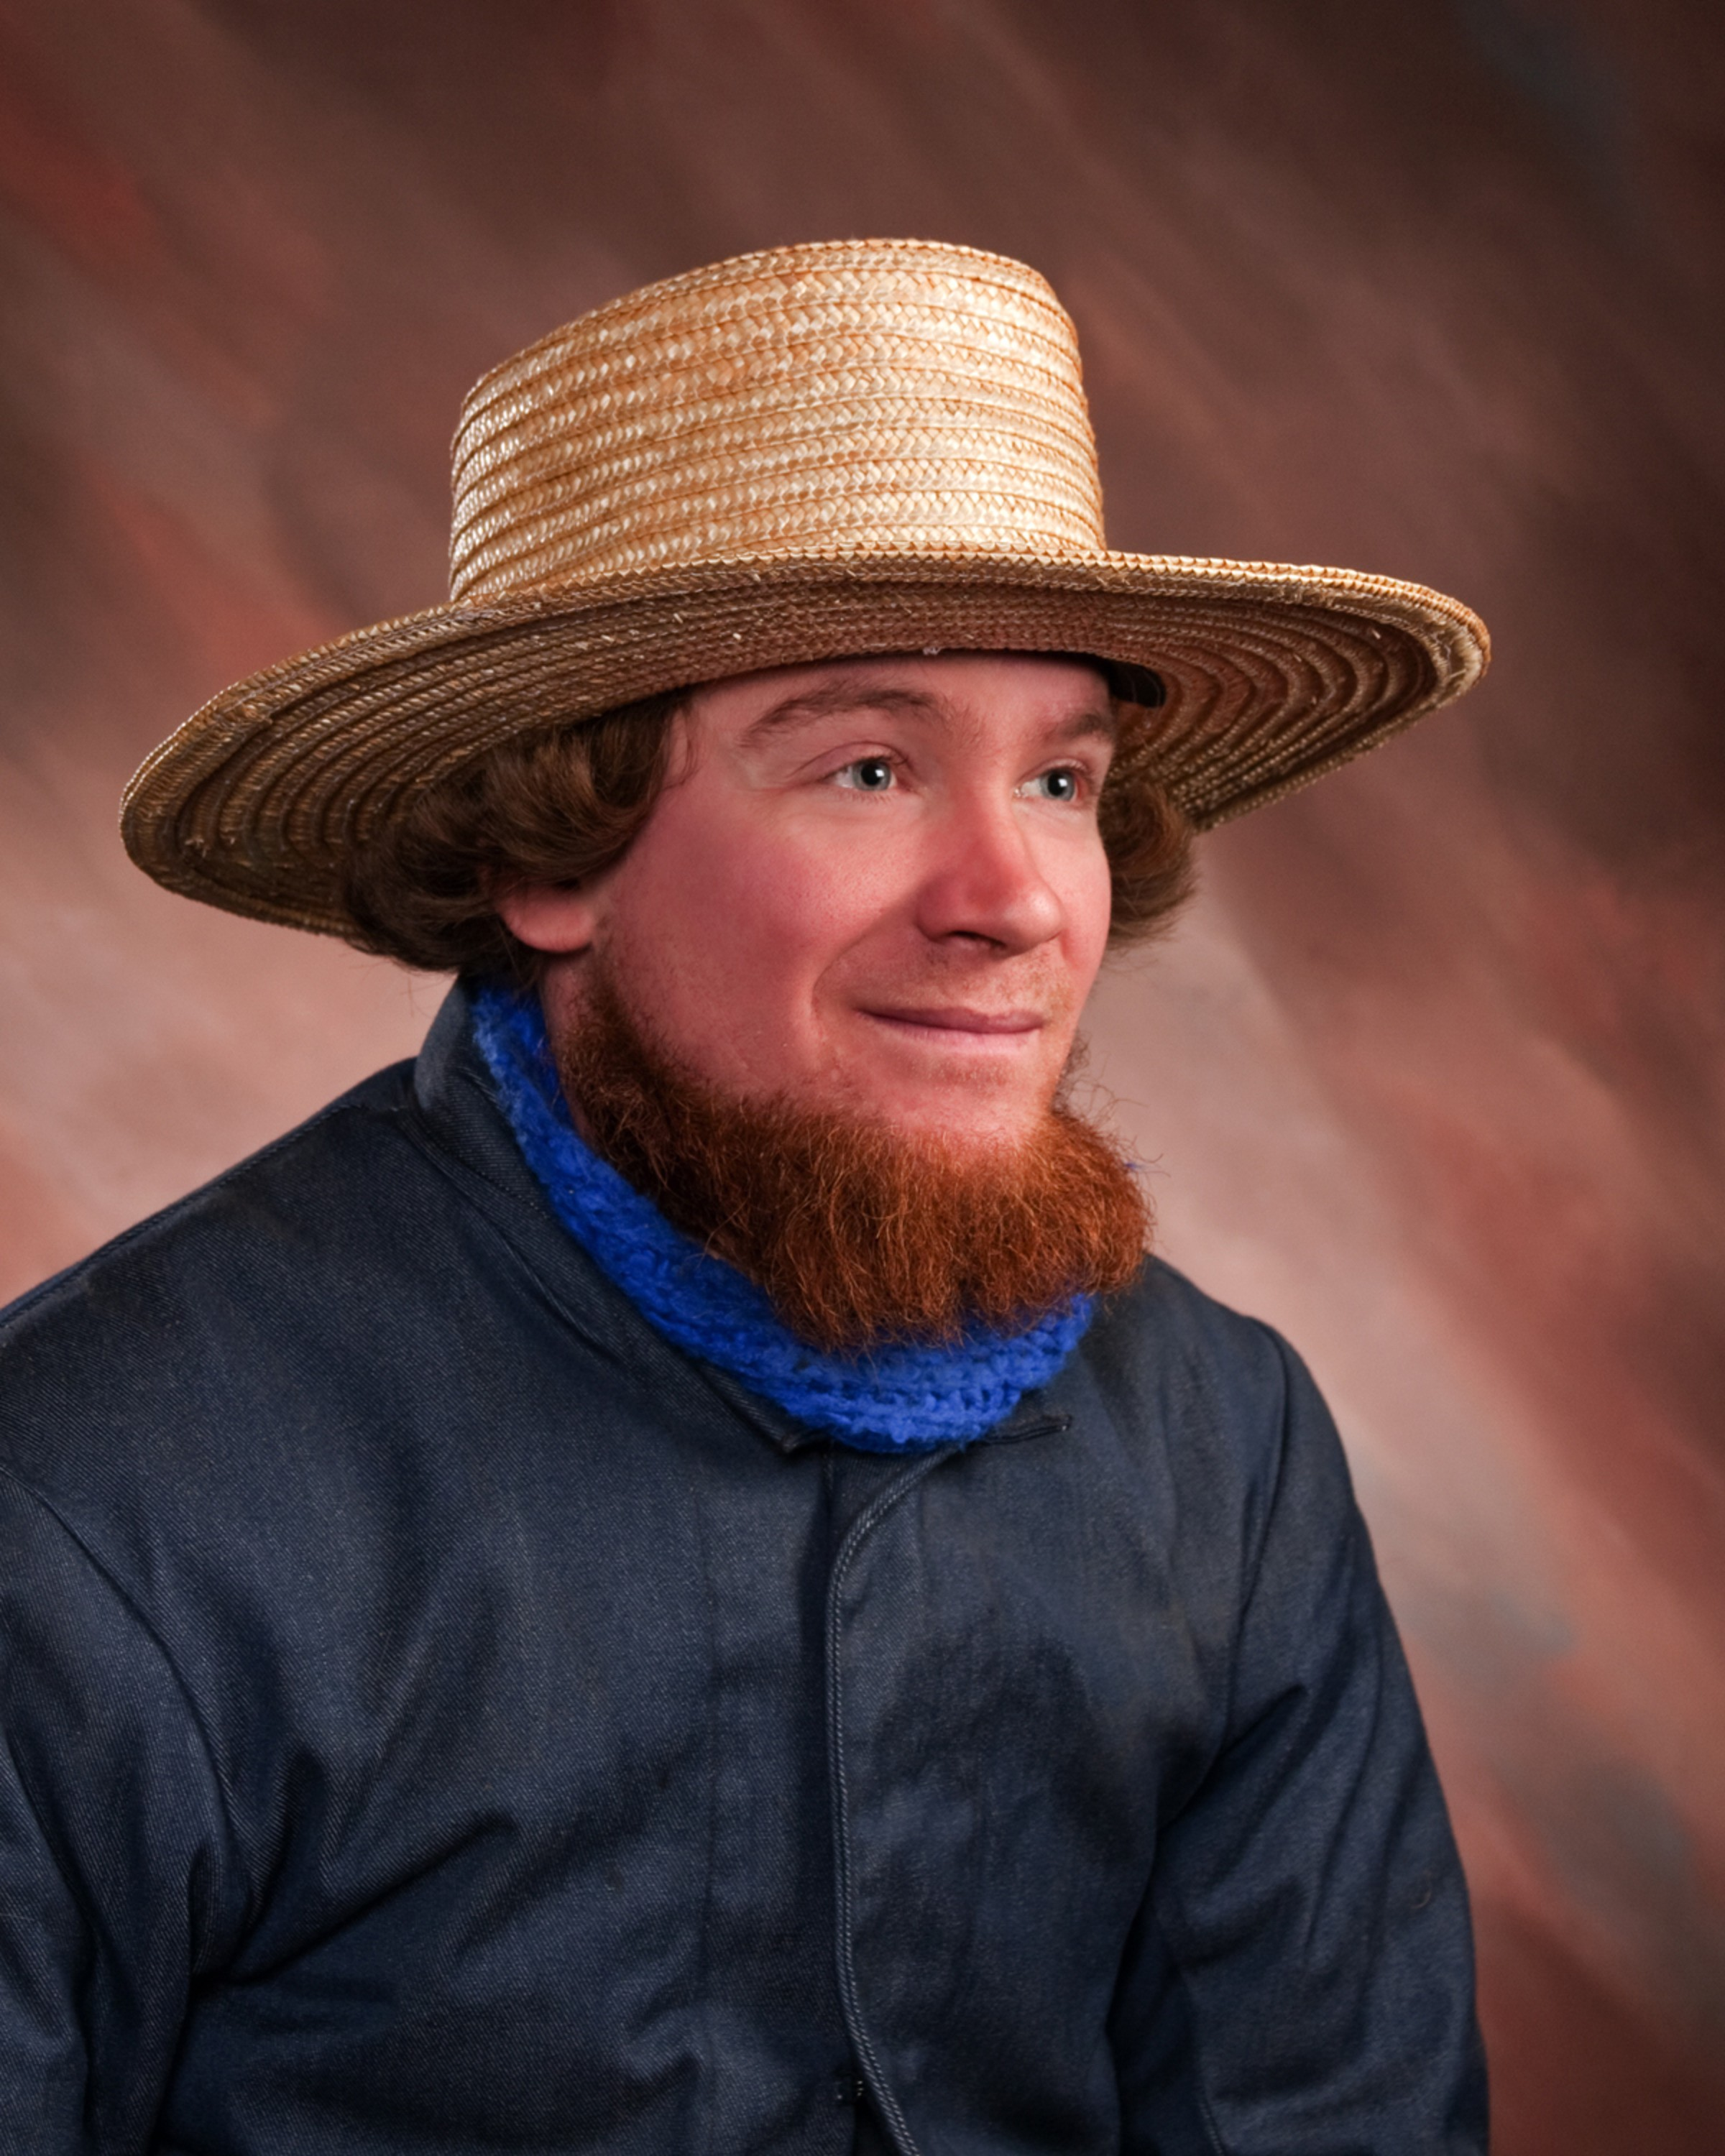 A short beard for Amish men.